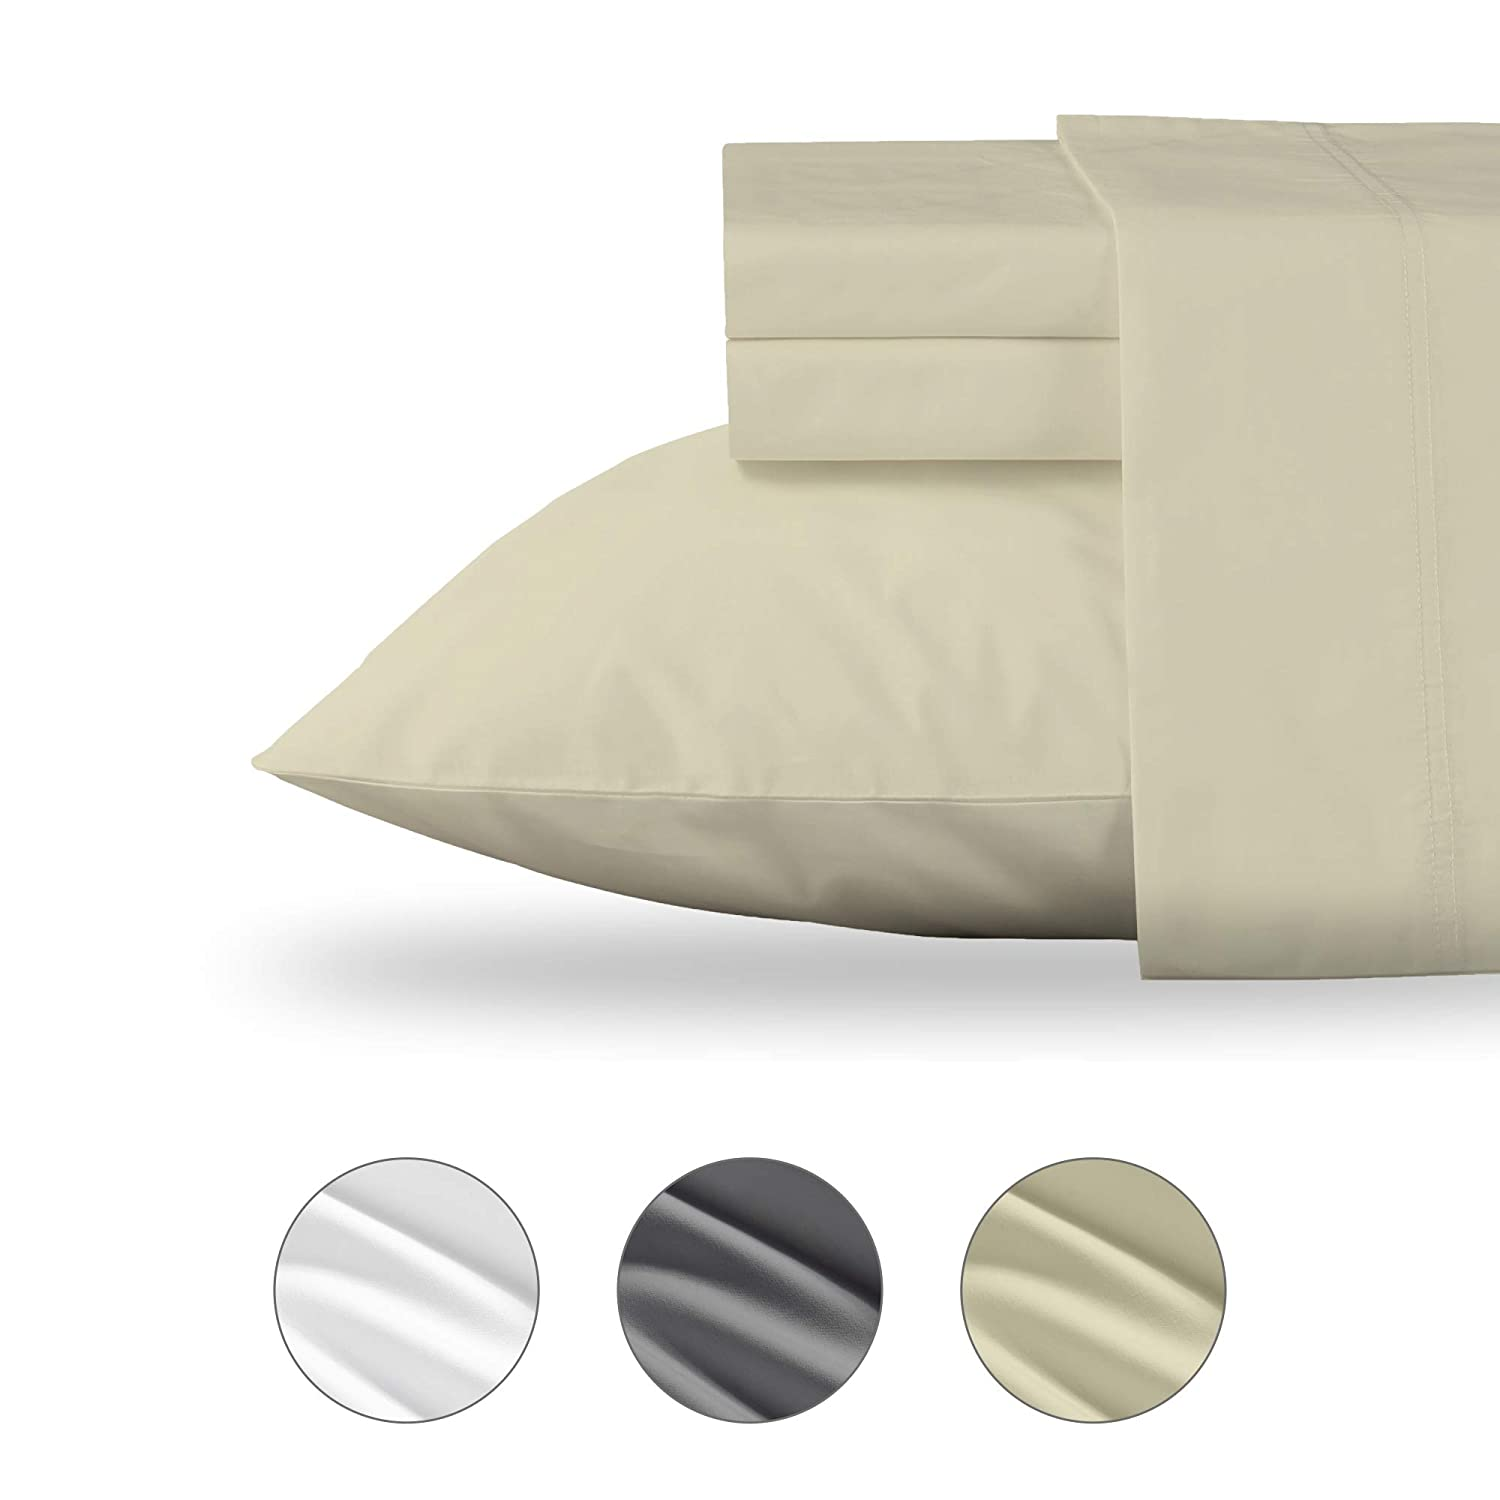 California Design Den Organic Cotton Percale Weave 3 Piece Sheet Set